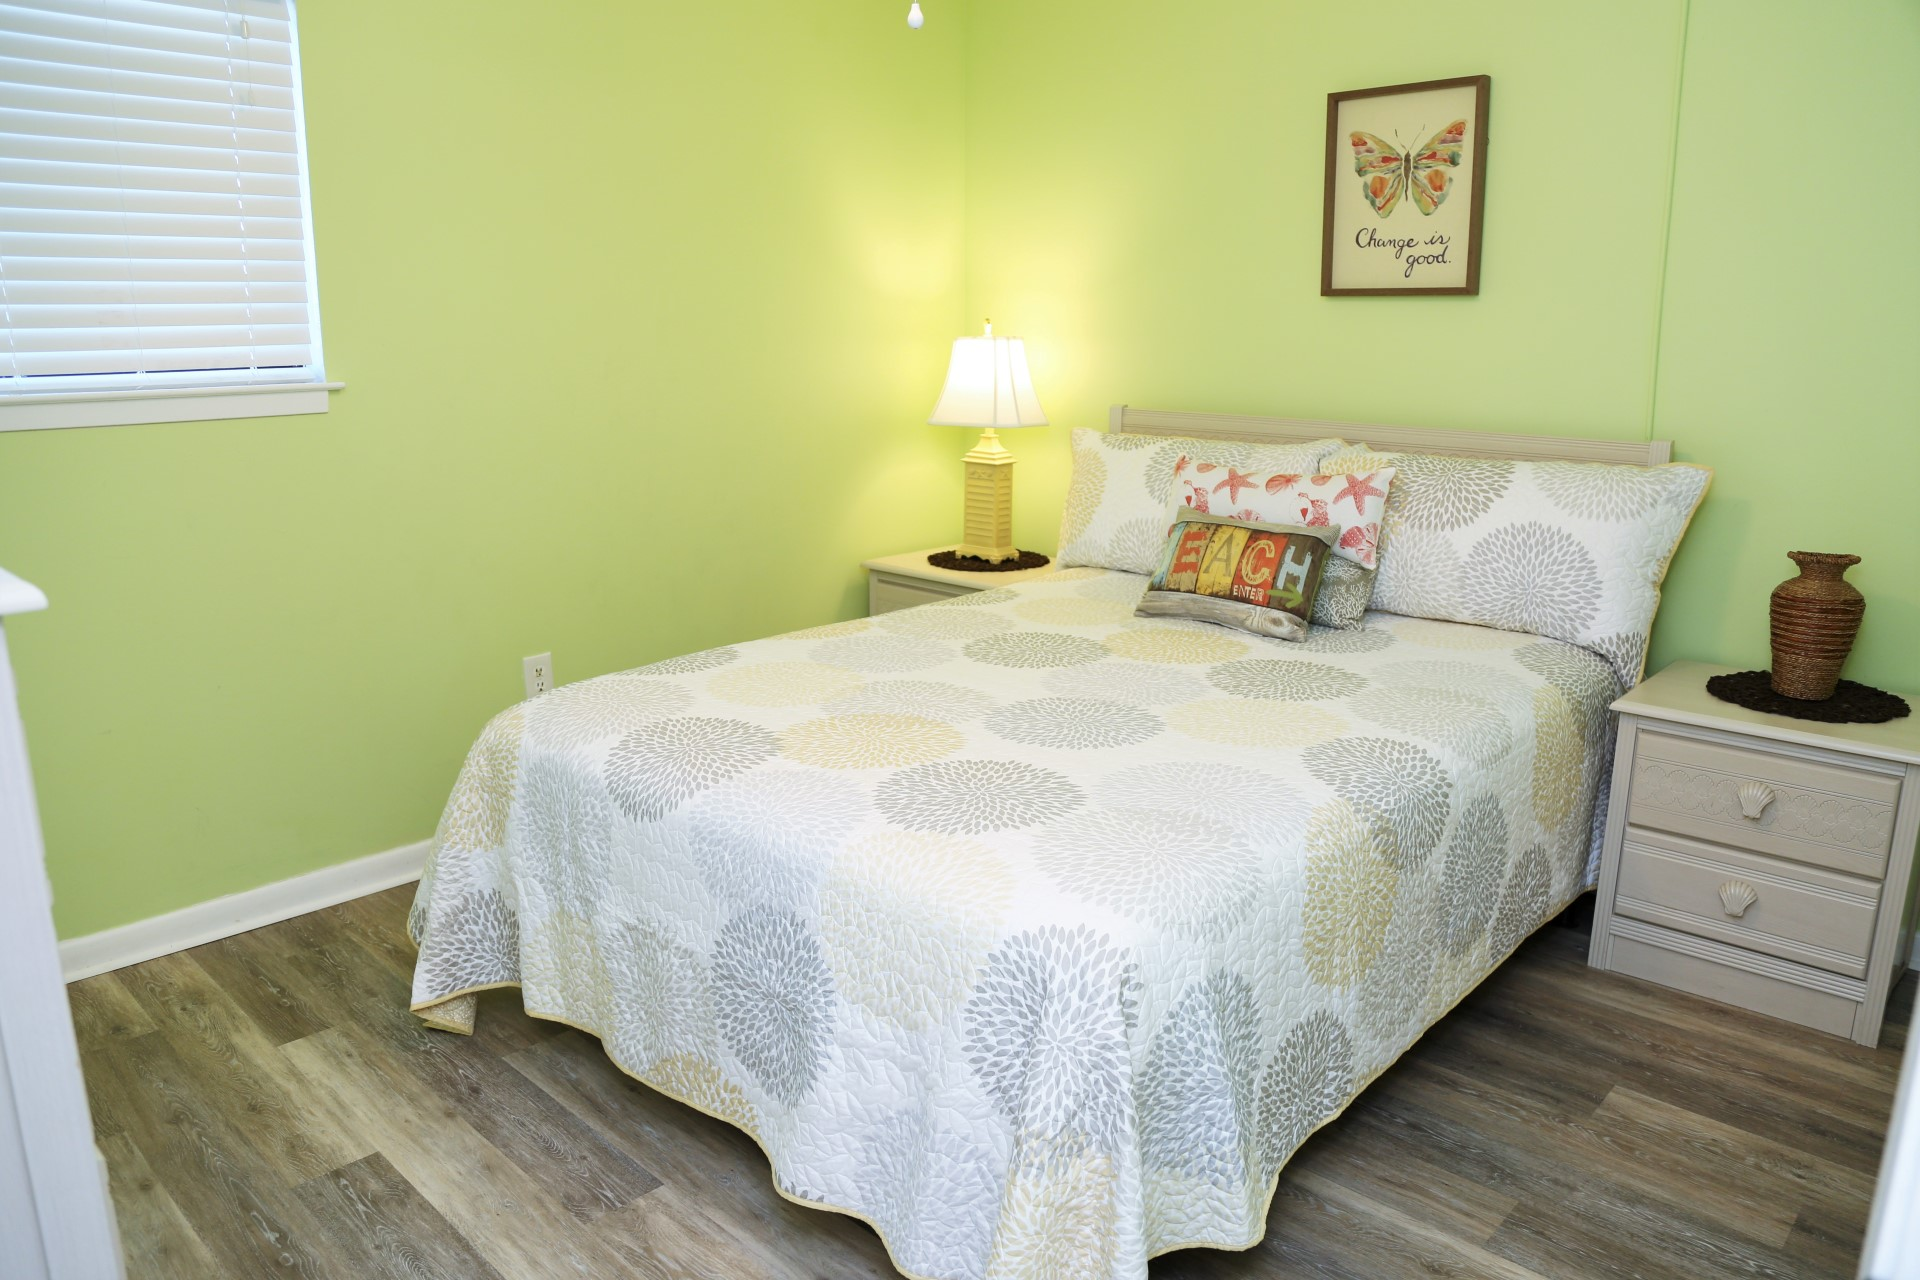 The second bedroom with Queen size bed and new flooring!